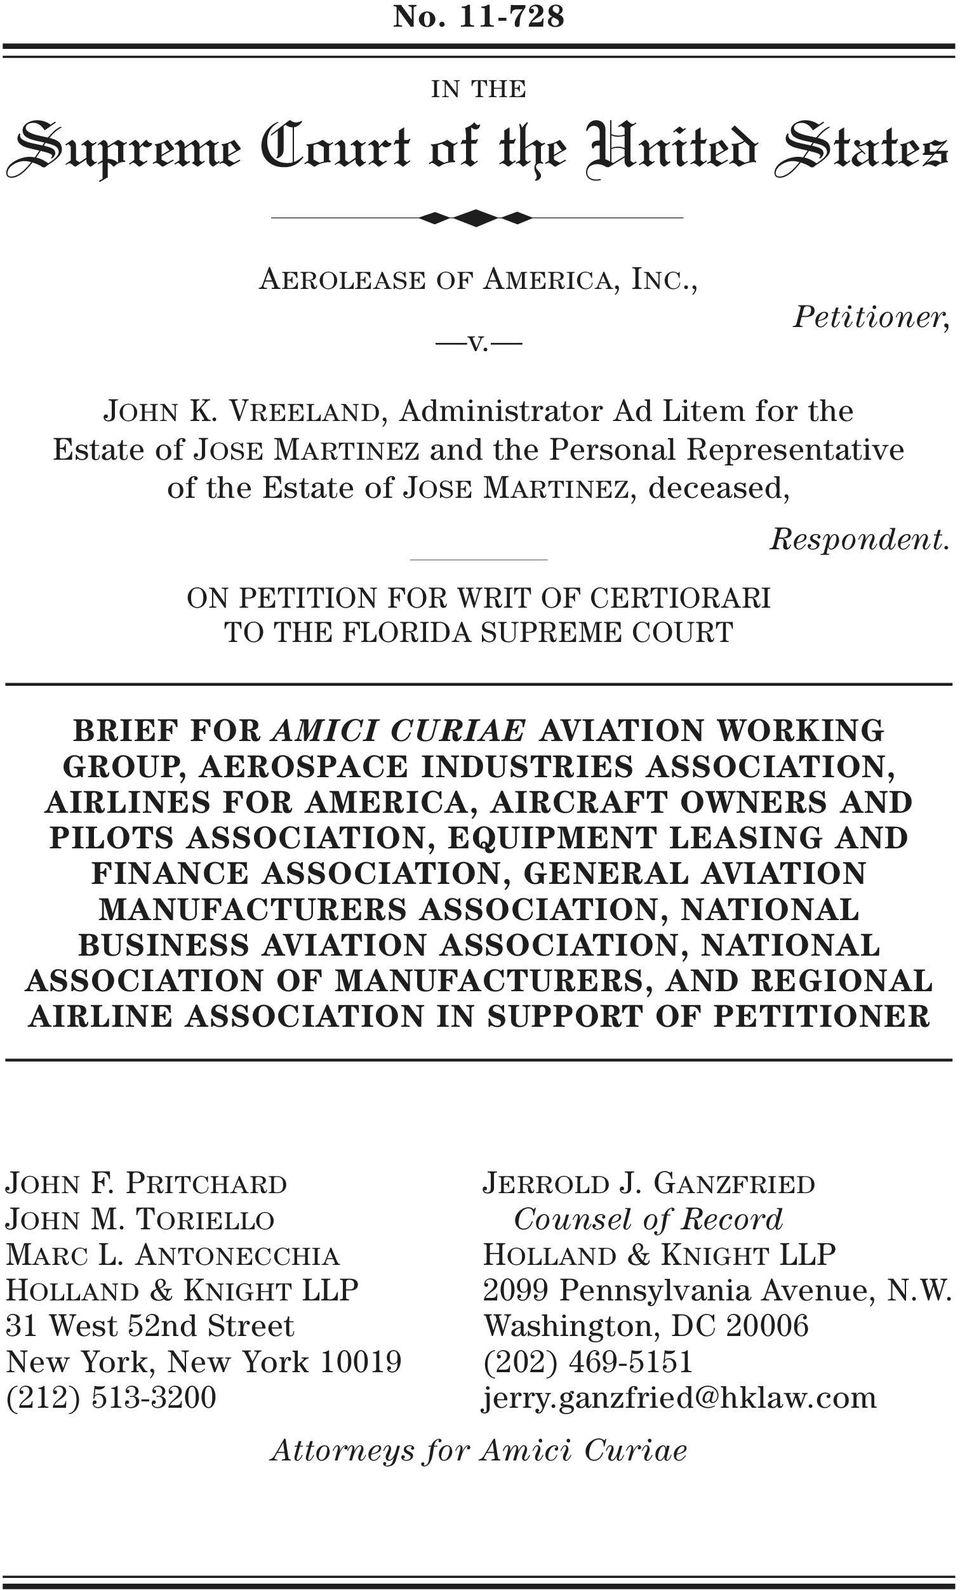 ON PETITION FOR WRIT OF CERTIORARI TO THE FLORIDA SUPREME COURT BRIEF FOR AMICI CURIAE AVIATION WORKING GROUP, AEROSPACE INDUSTRIES ASSOCIATION, AIRLINES FOR AMERICA, AIRCRAFT OWNERS AND PILOTS